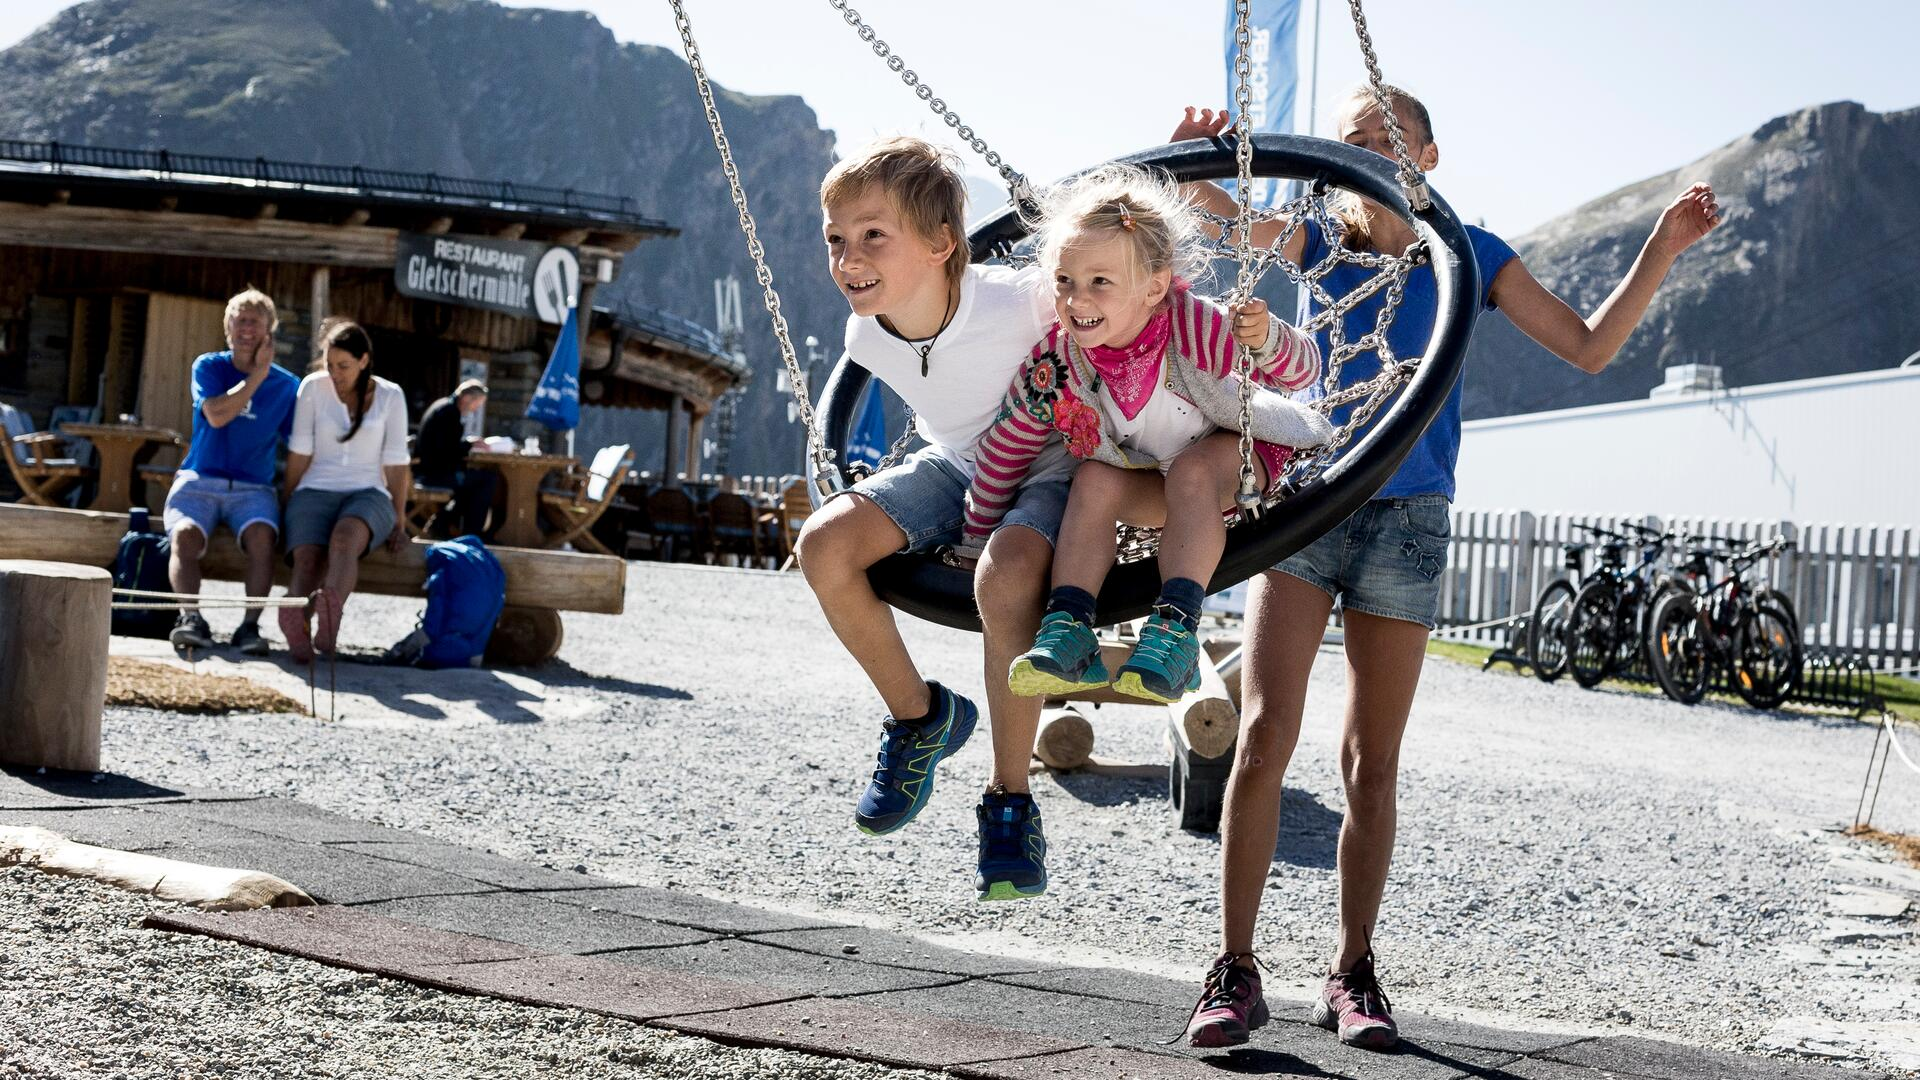 Family fun at the adventure playground in 2.500 m above sea level | © Kitzsteinhorn